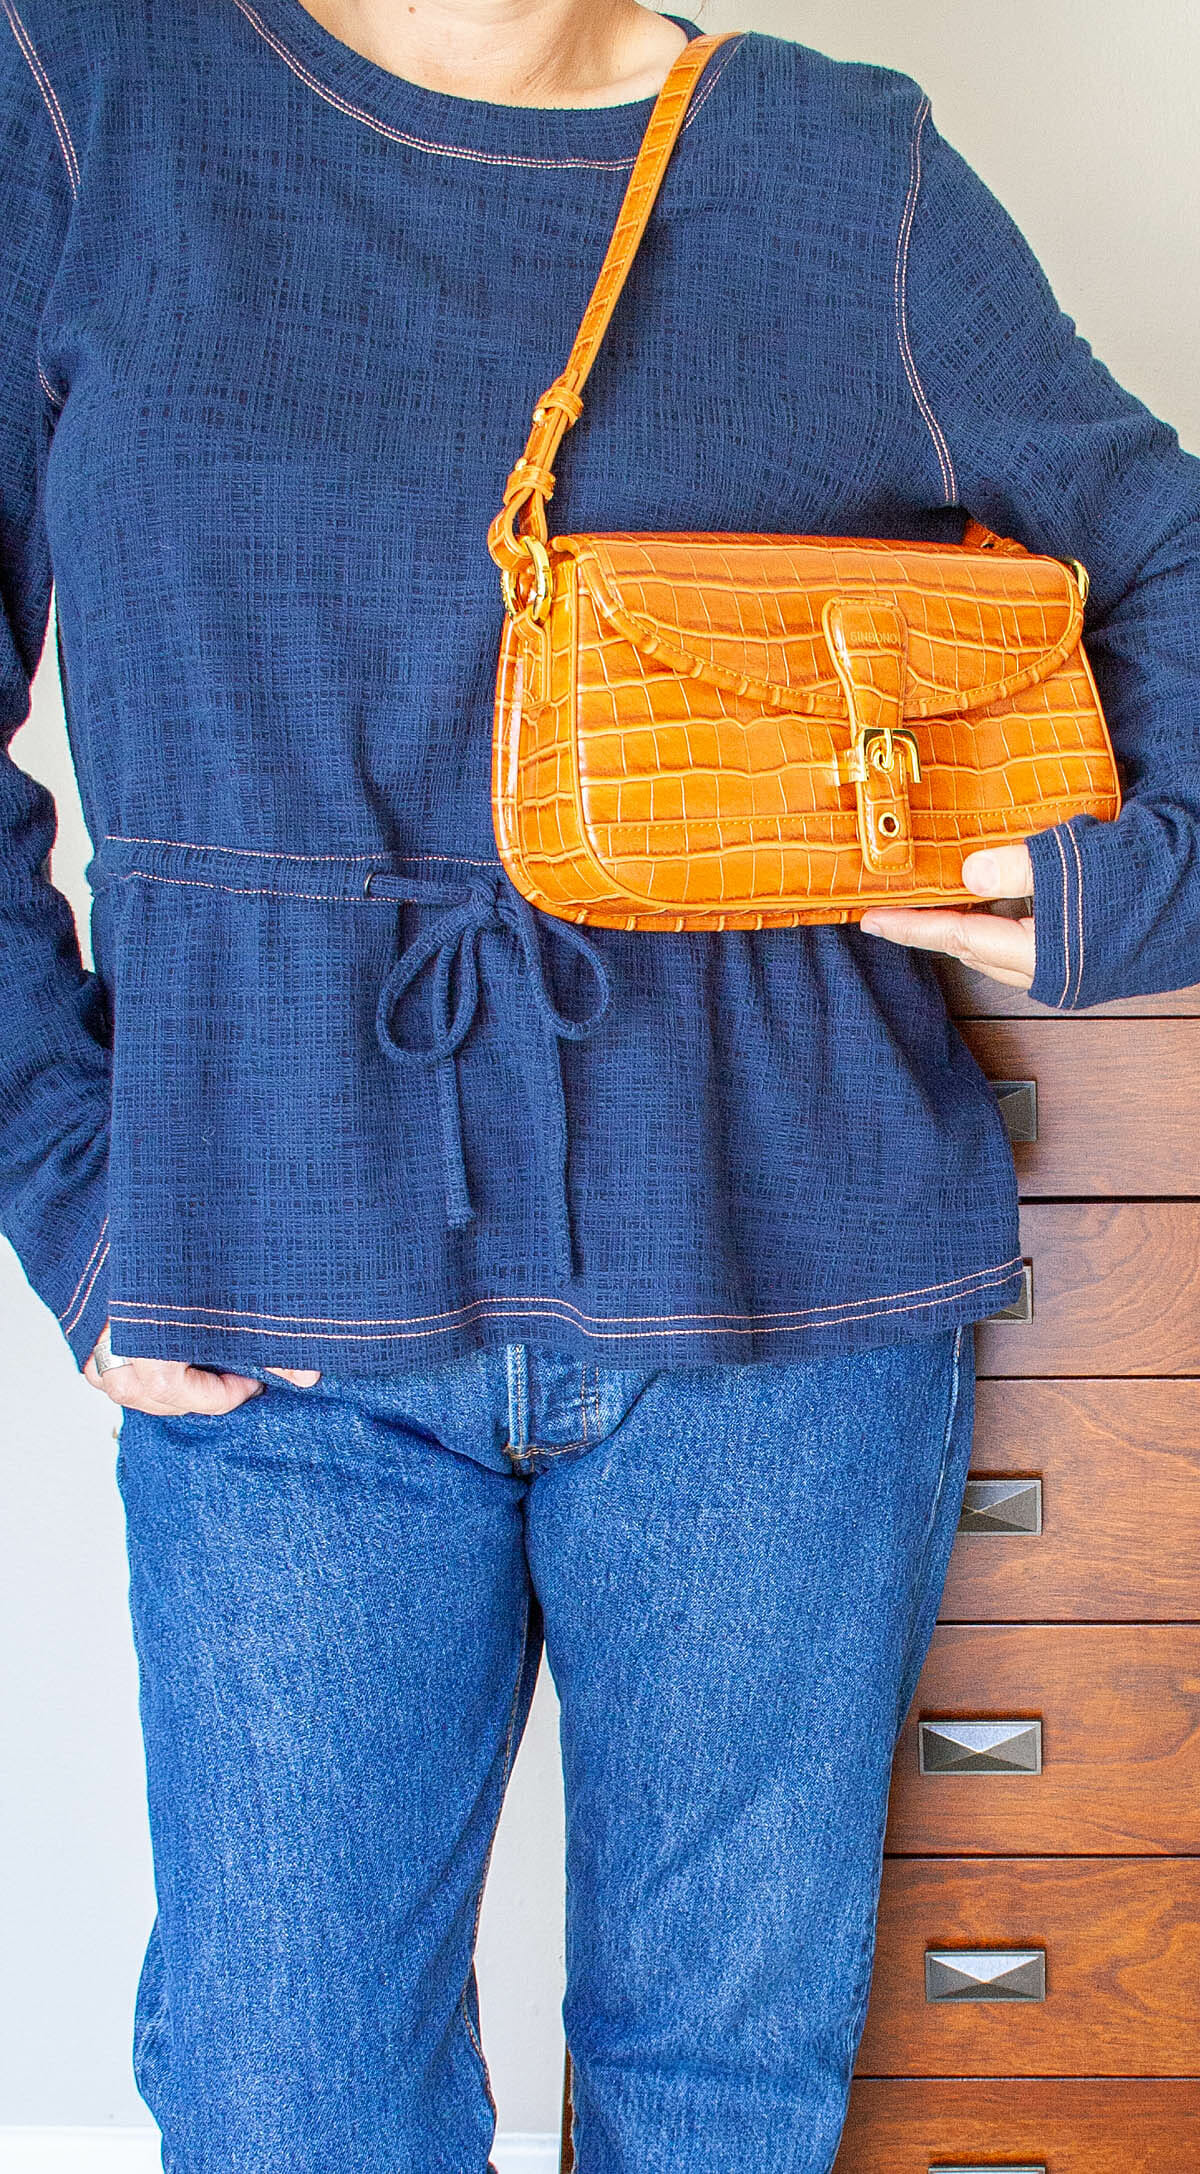 SINBONO Fiona Shoulder Bag worn on a woman with a blue shirt and blue jeans.